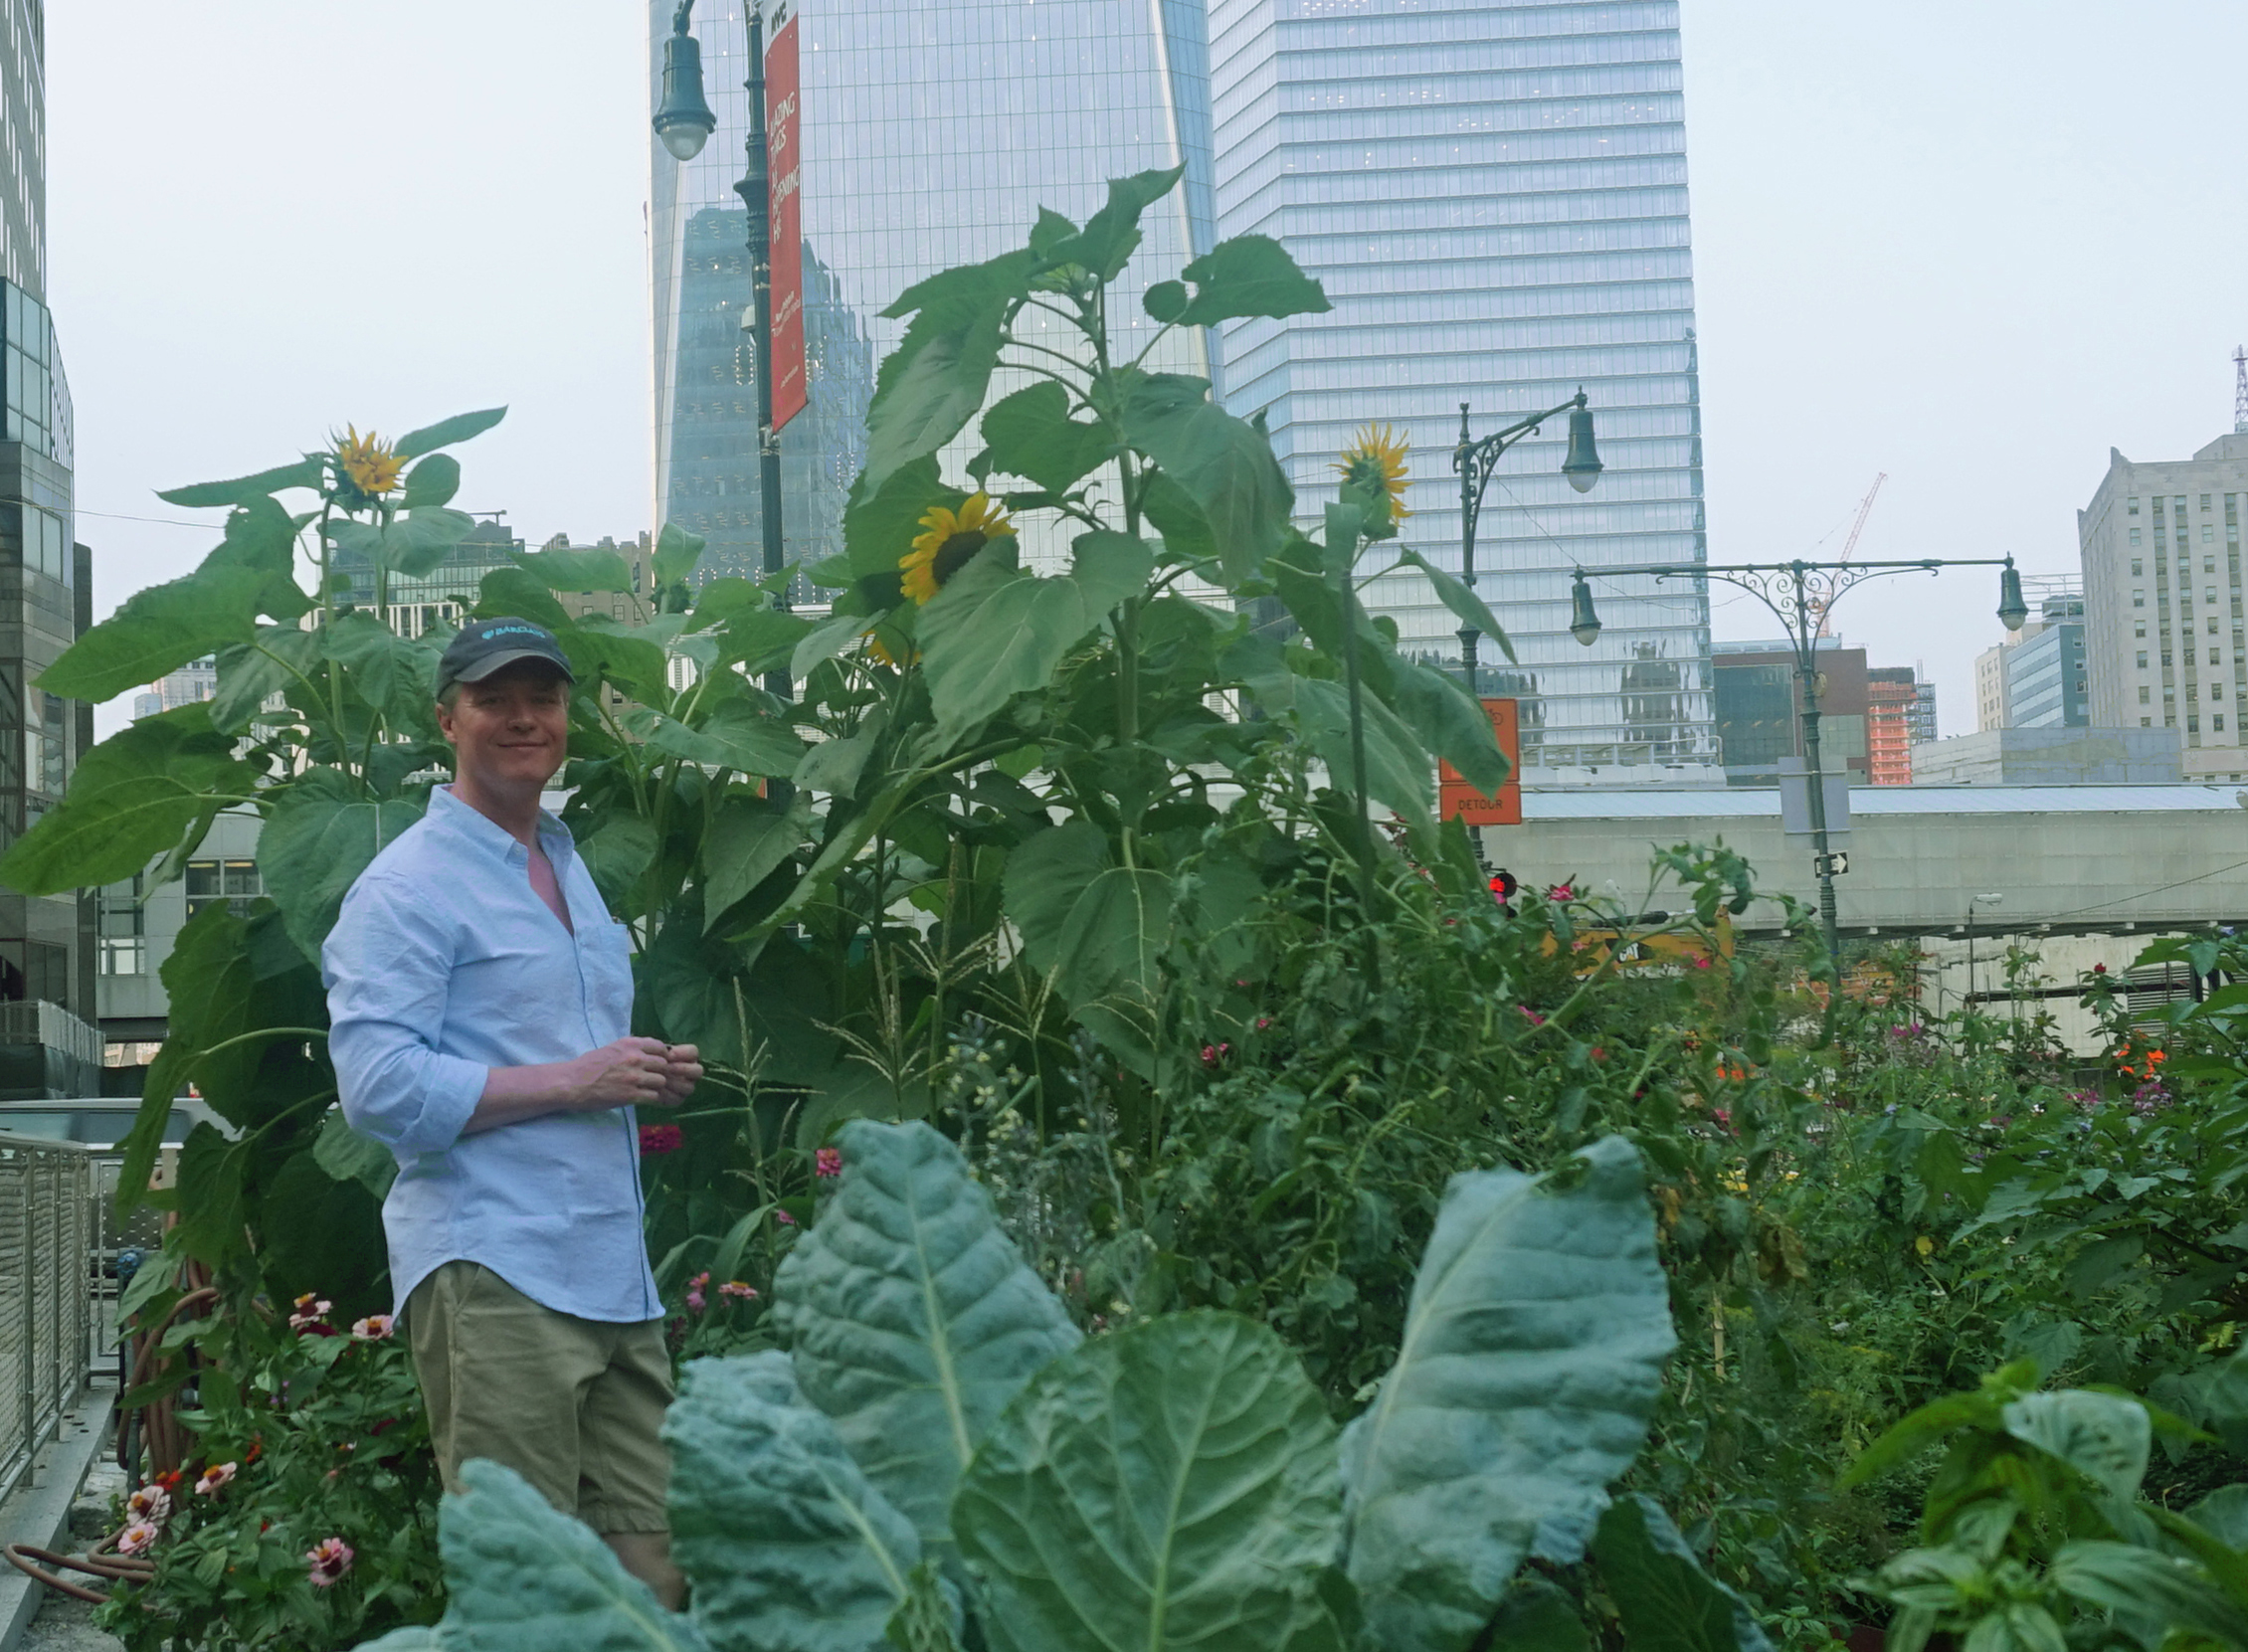 Me in front of sunflowers 8-5-2014